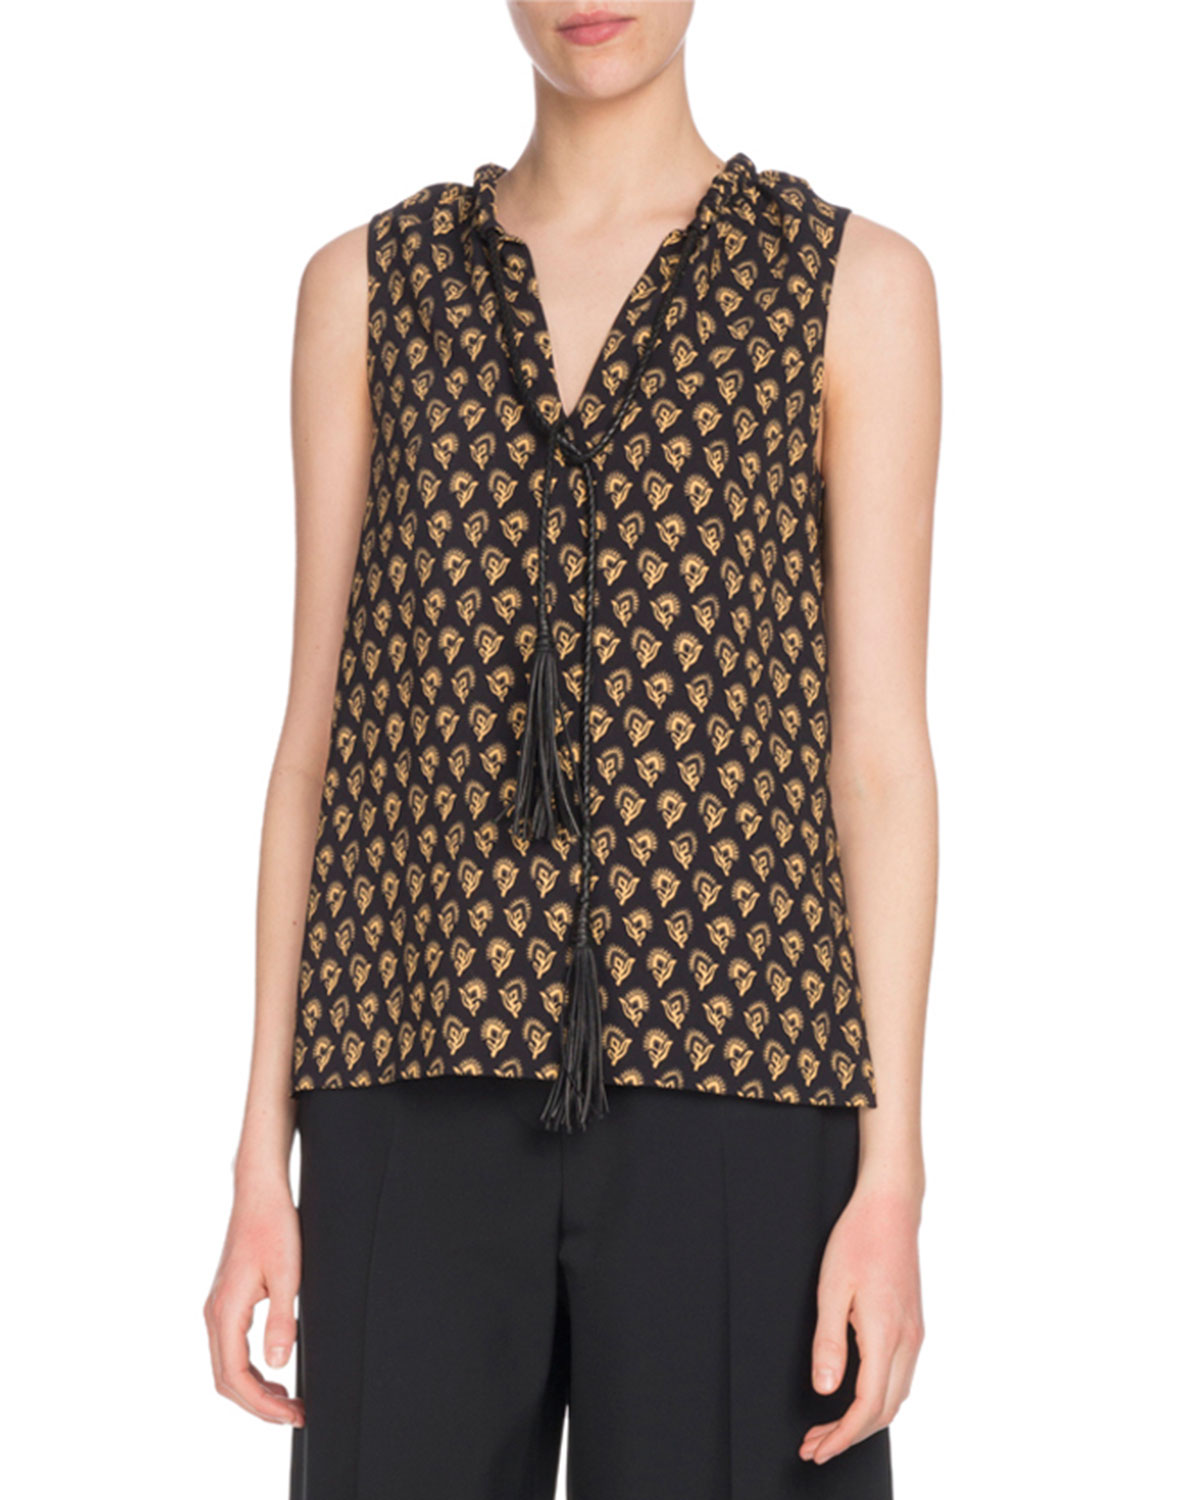 PROENZA SCHOULER SLEEVELESS FAN-PRINT TUNIC WITH LEATHER TIES